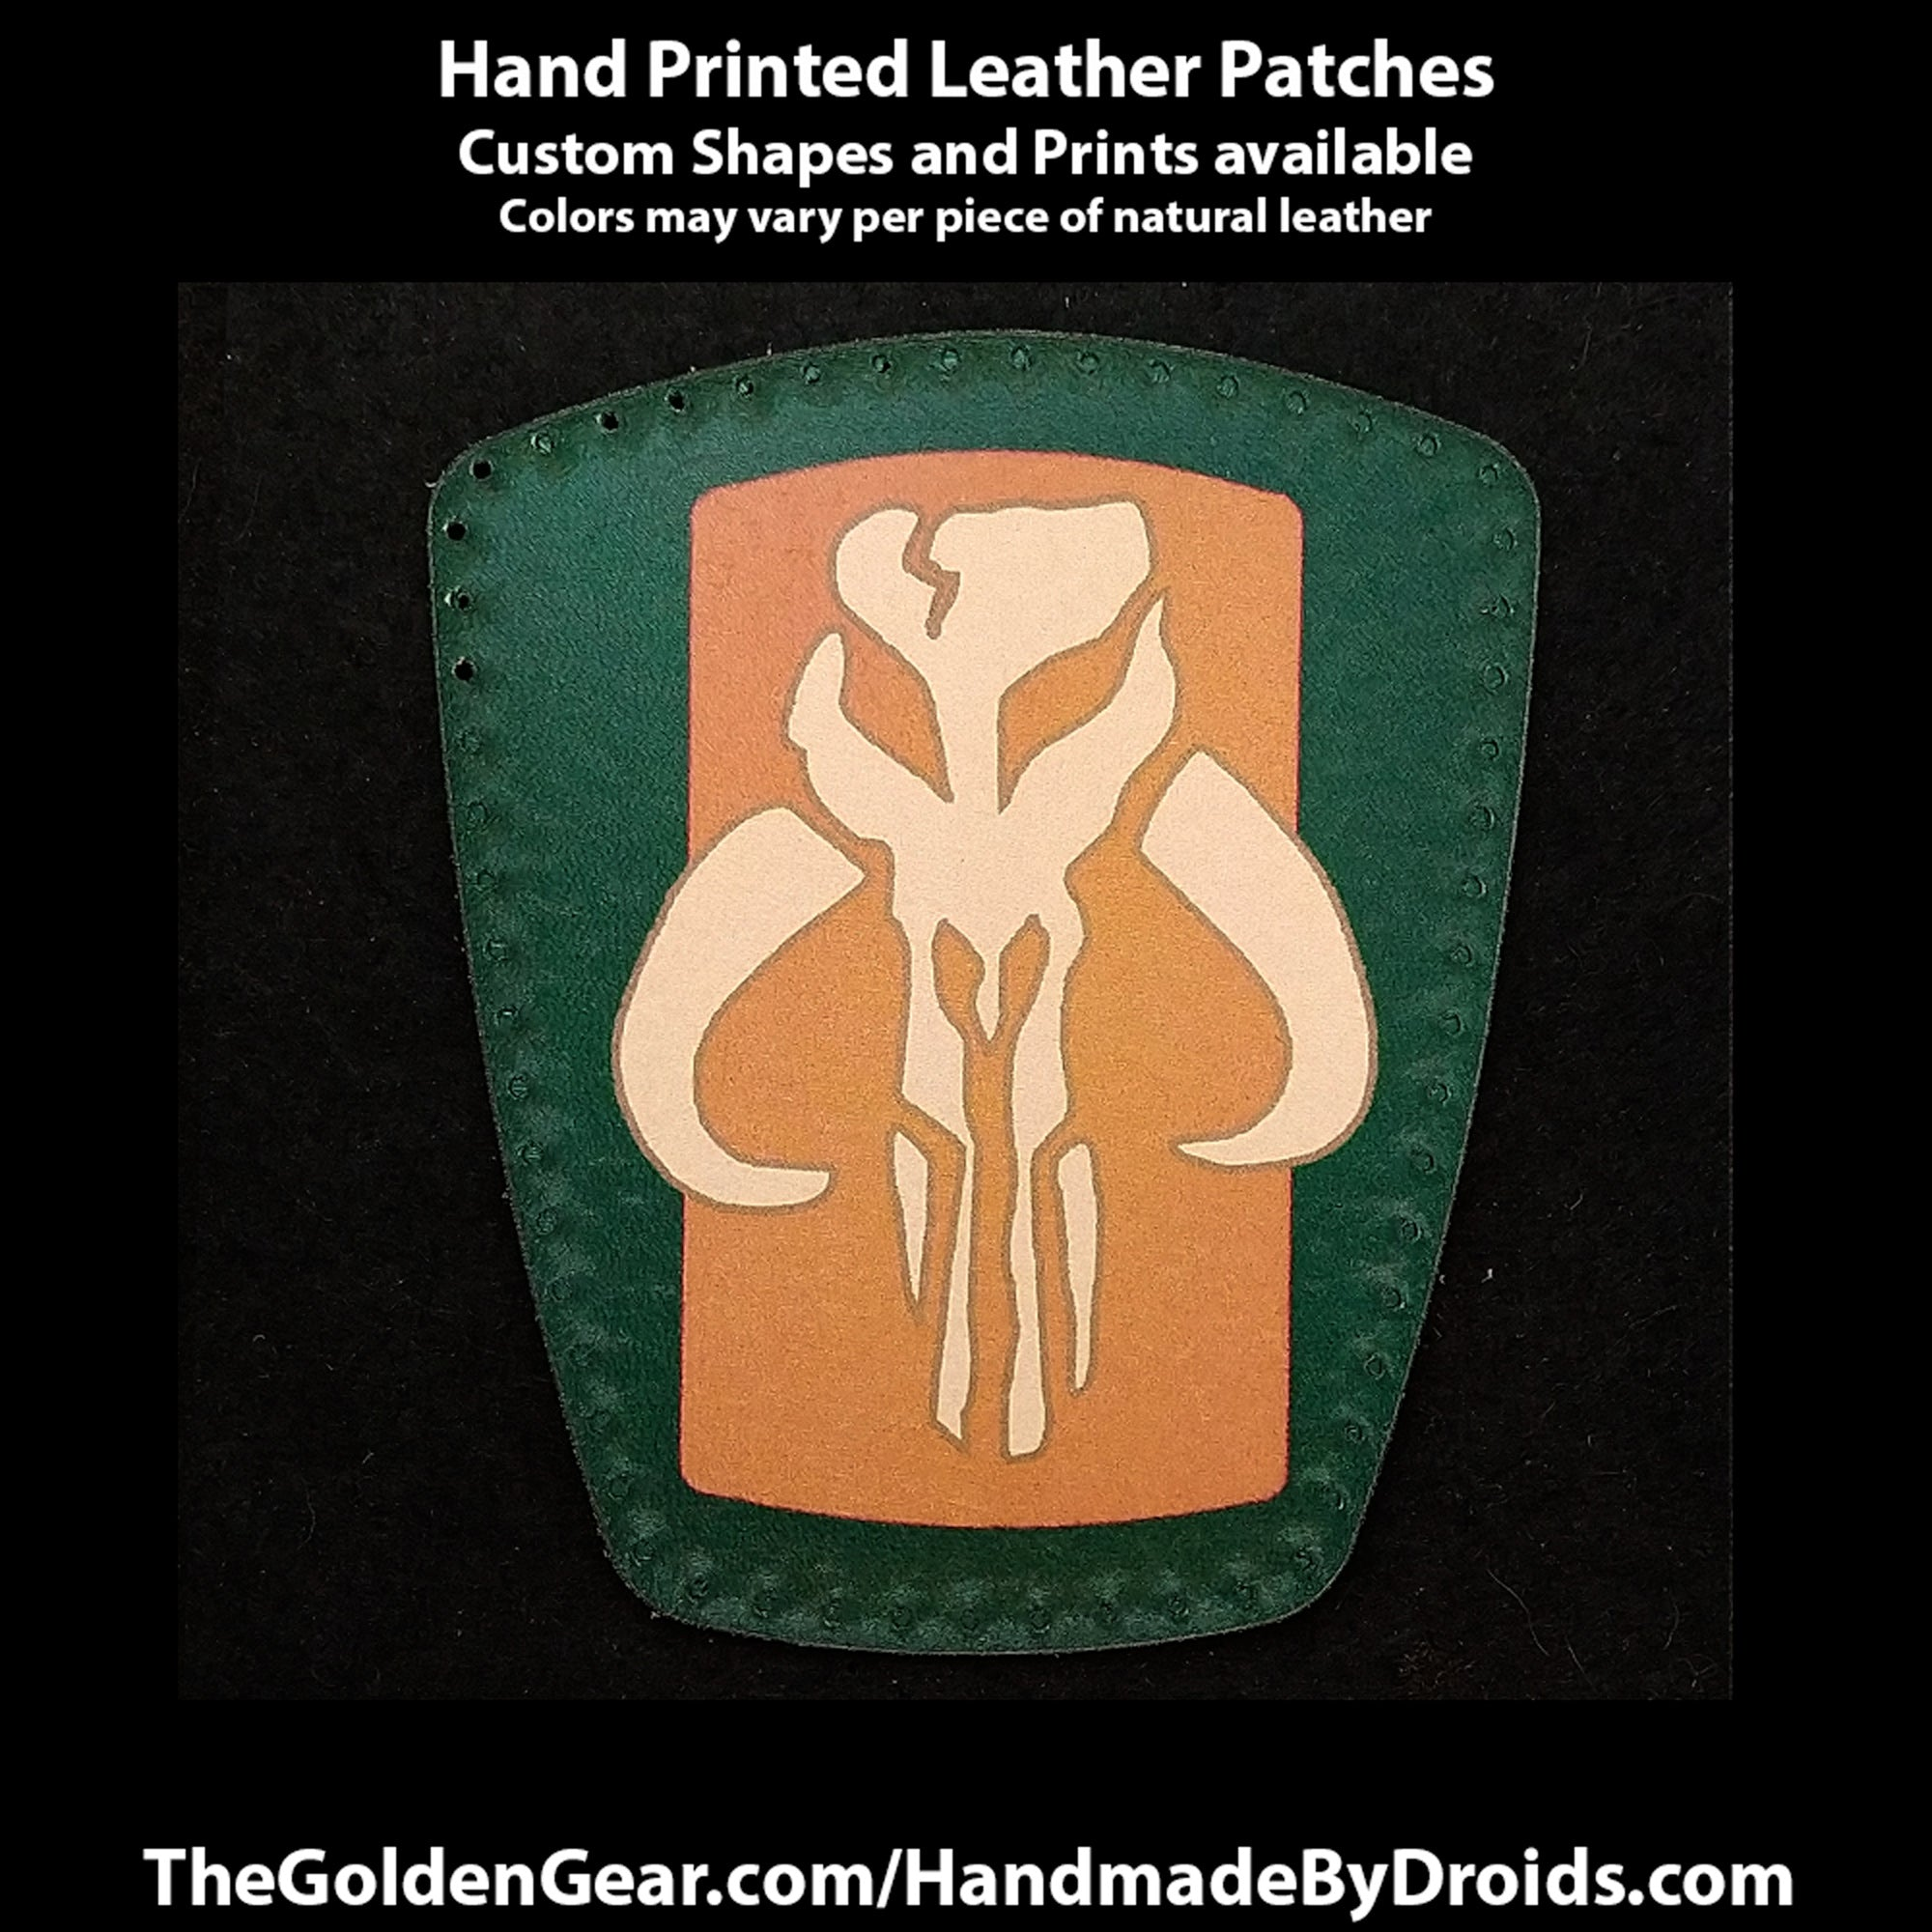 Mythosaur Signet (Star Wars) 4 inch Leather Patch